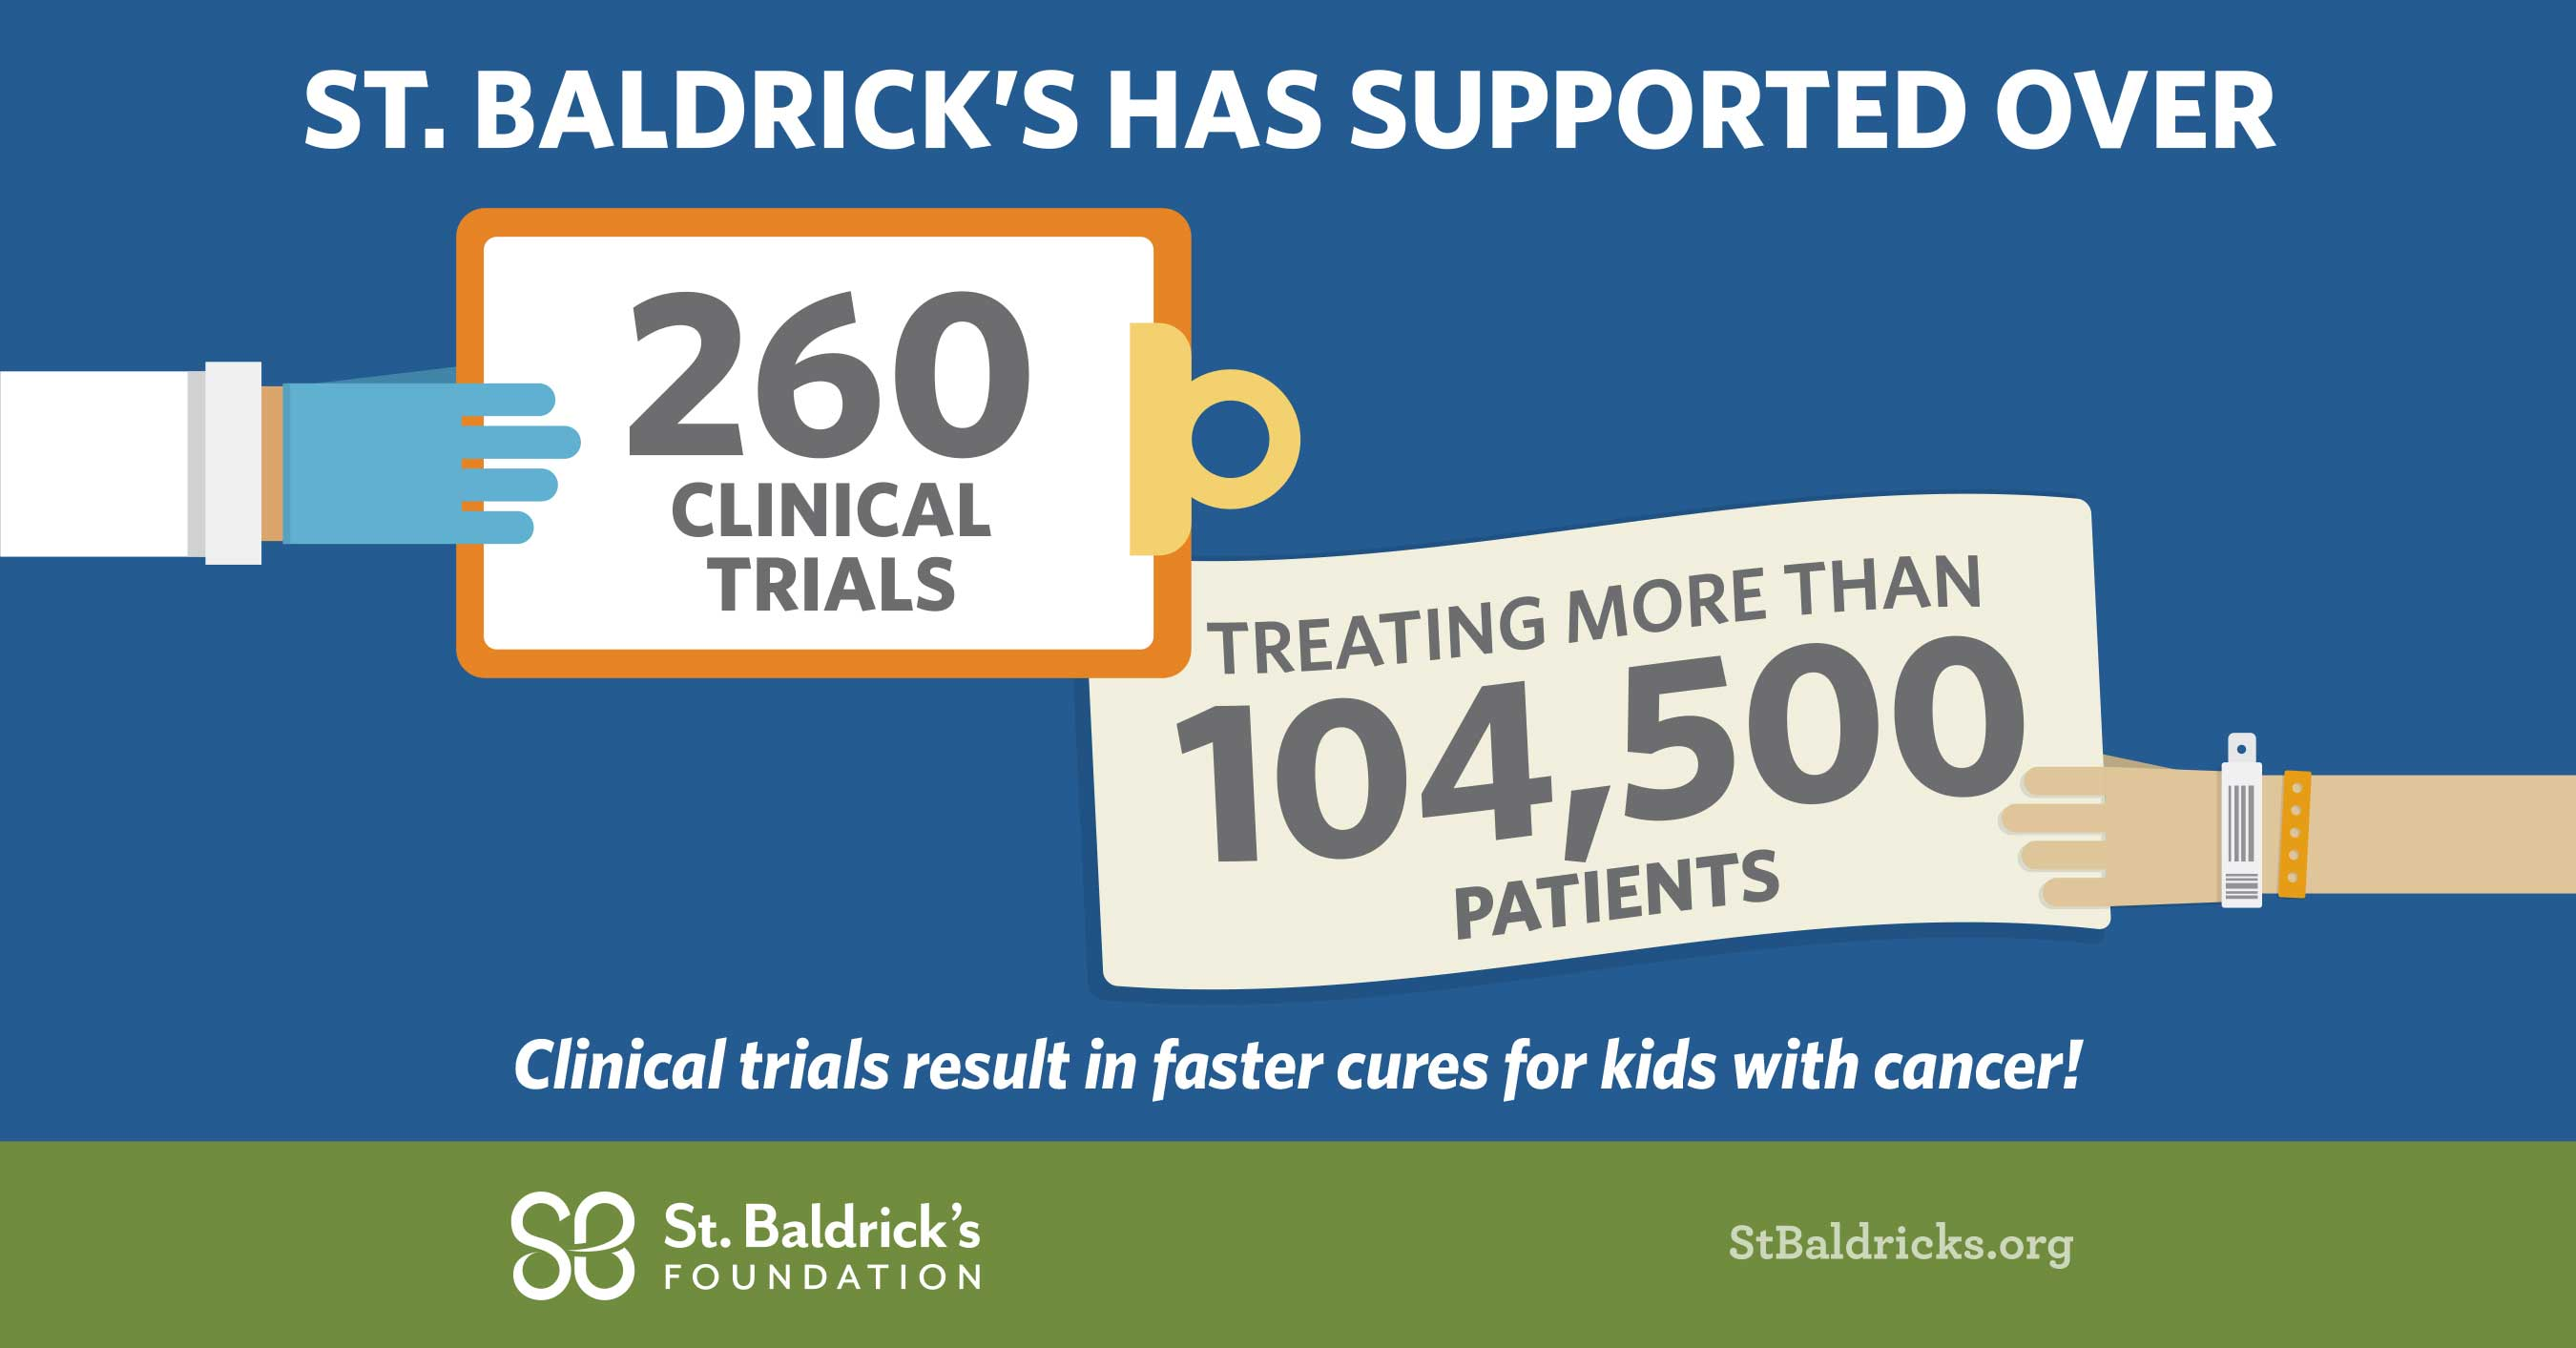 While every stage of research is essential, clinical trials can result in new and improved treatments for children.